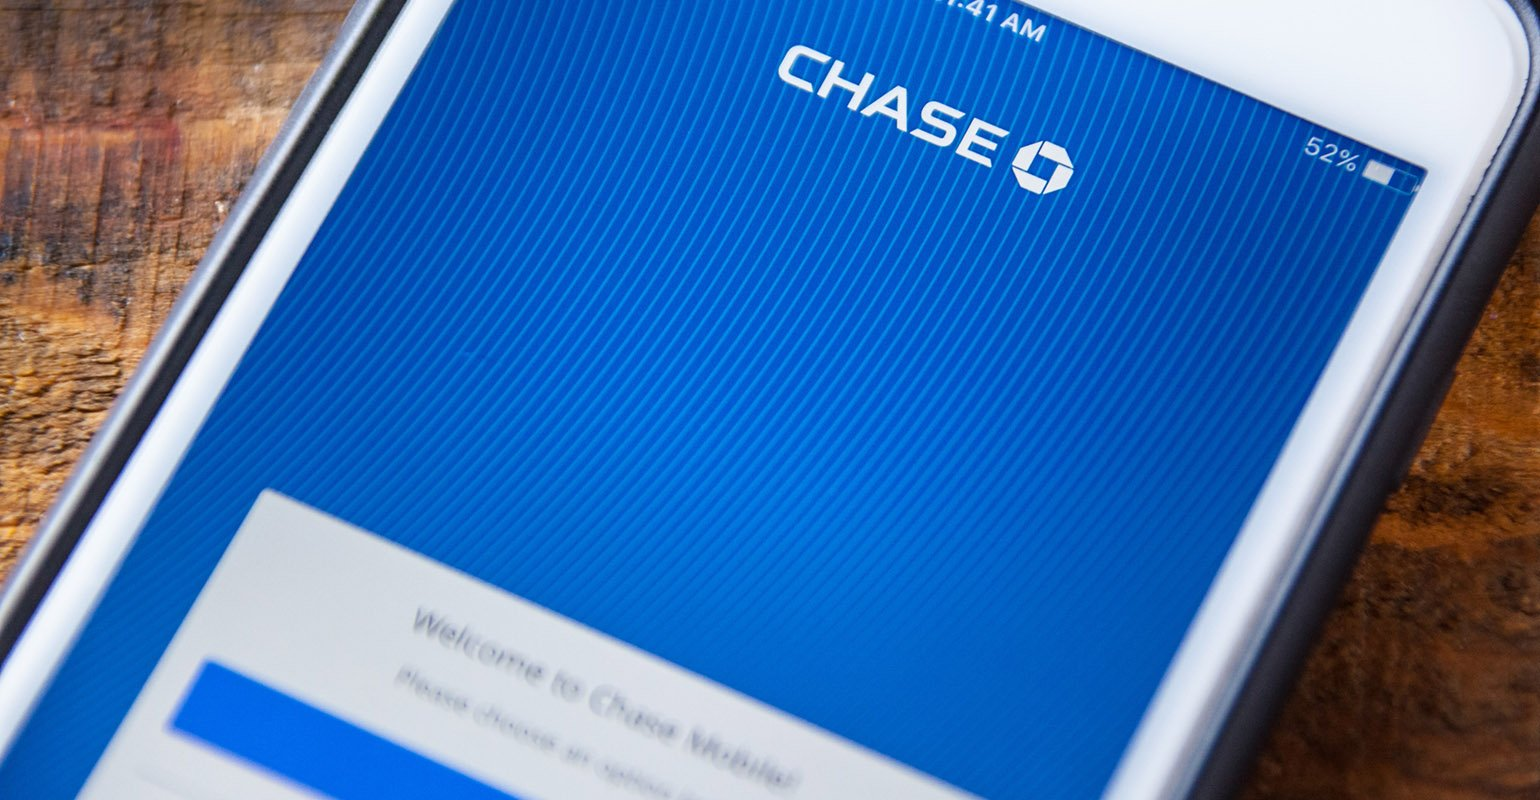 JPMorgan Chase Seeks Mass Appeal With Robo Advisor